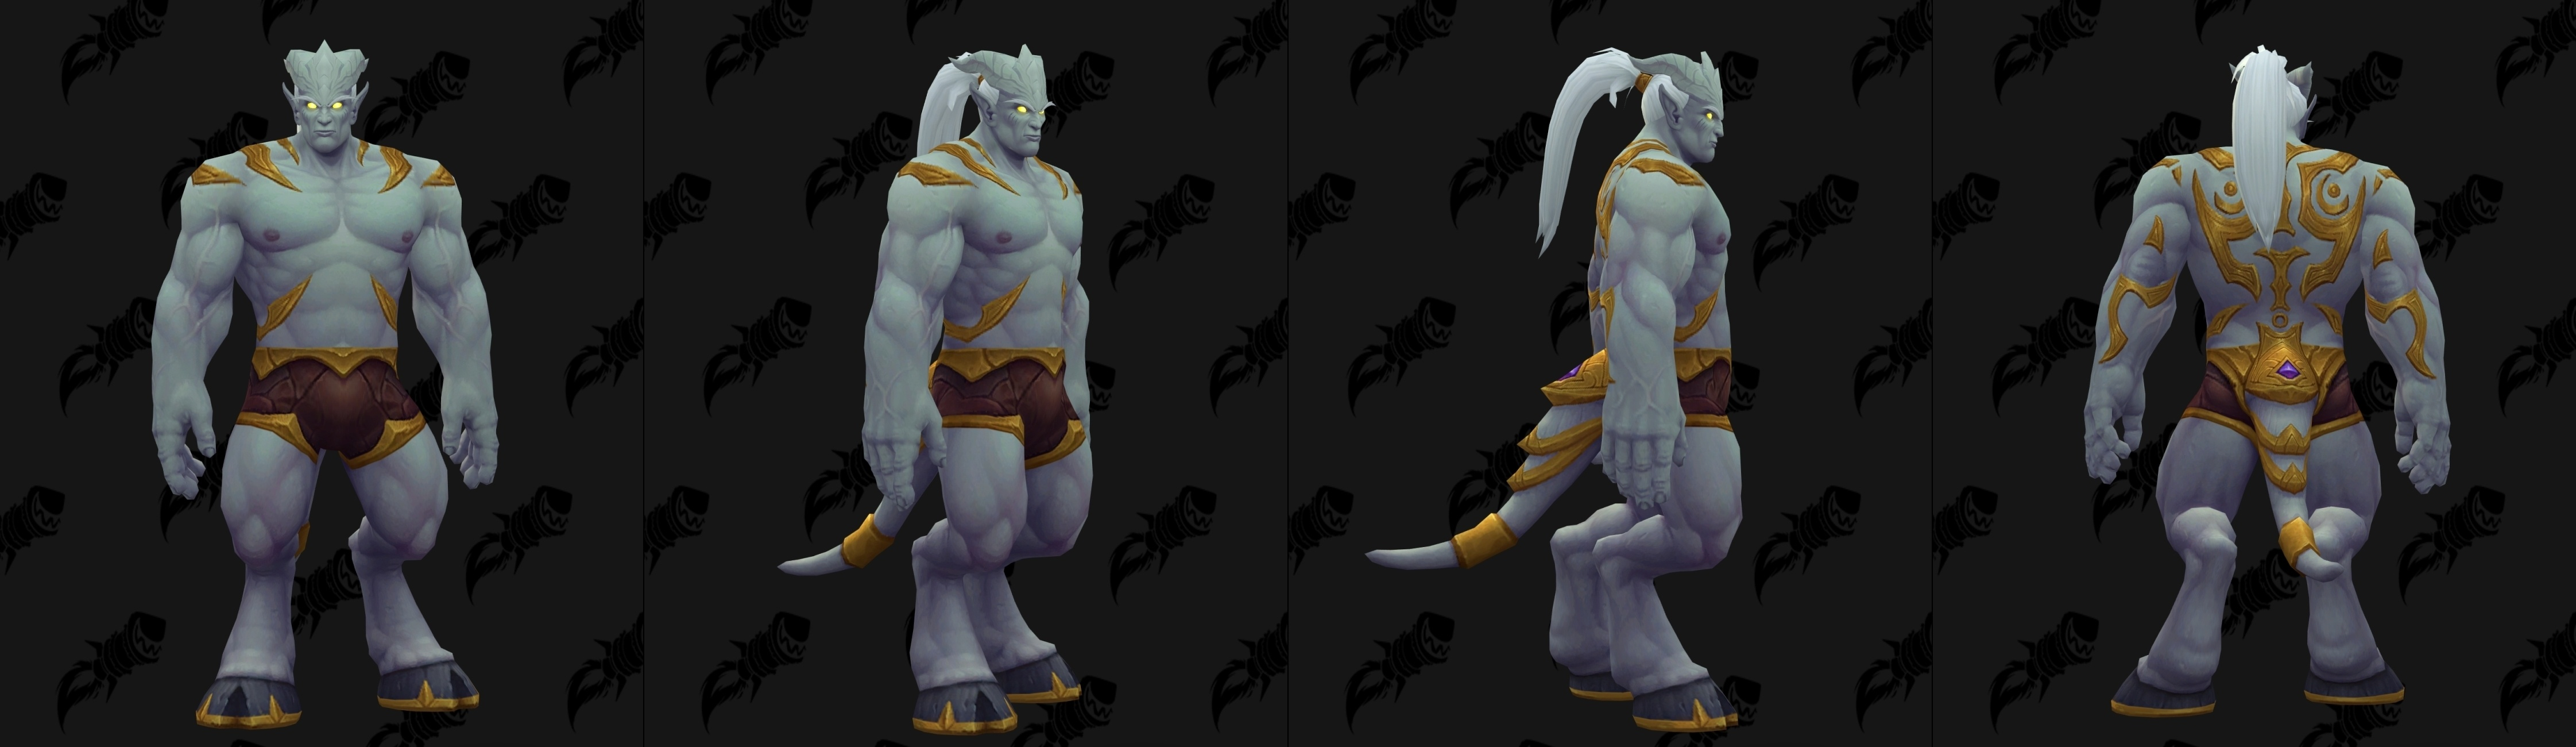 Lightforged Draenei Allied Race - Guides - Wowhead